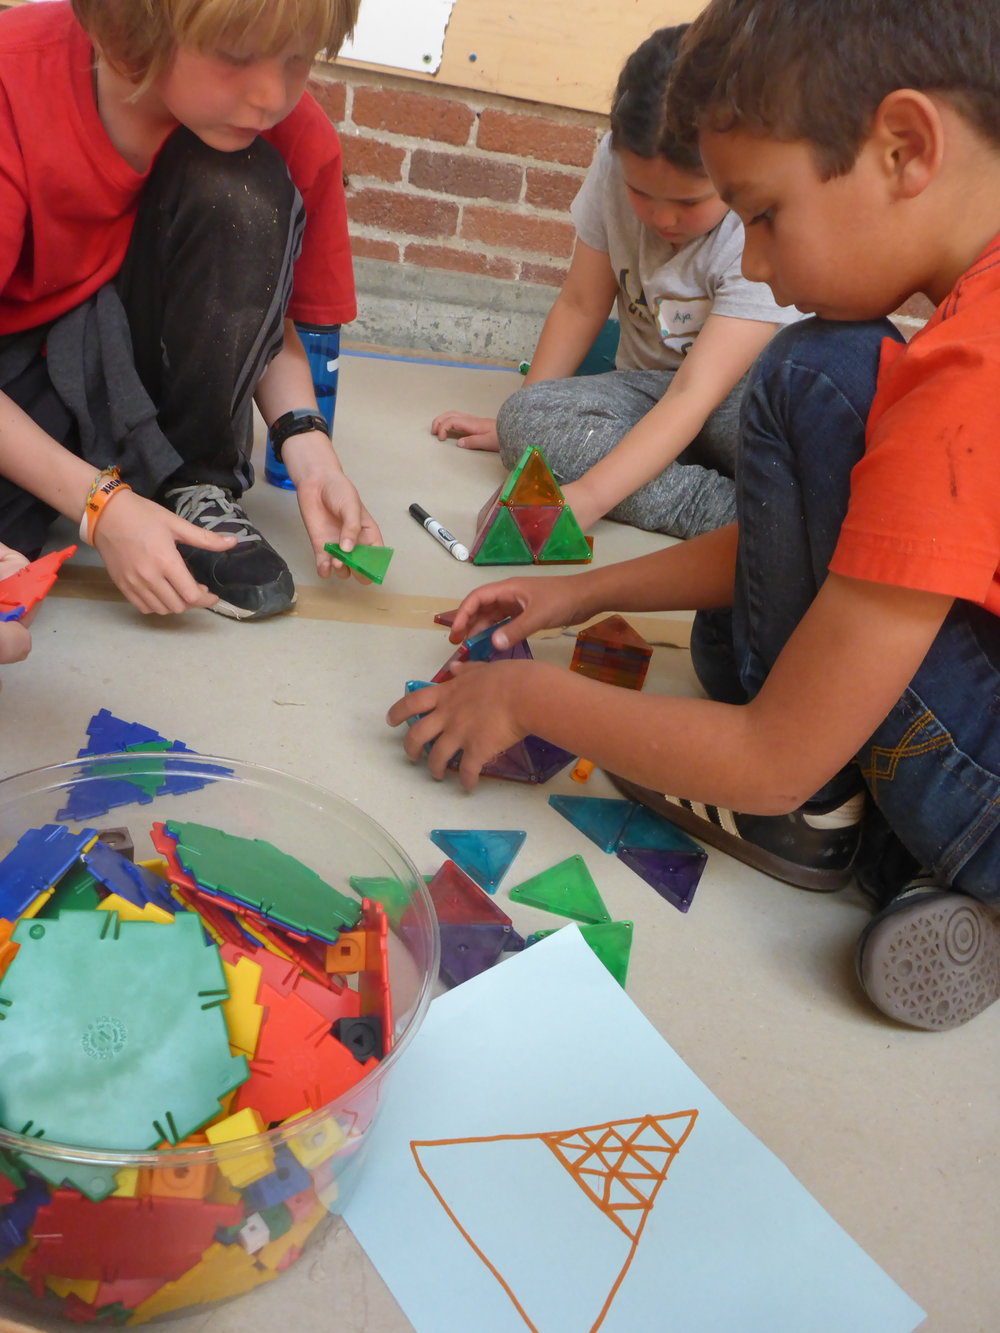 Jasper, Aya and Cole work on turning their drawing into a 3-D shape using magnatiles and polydrons.